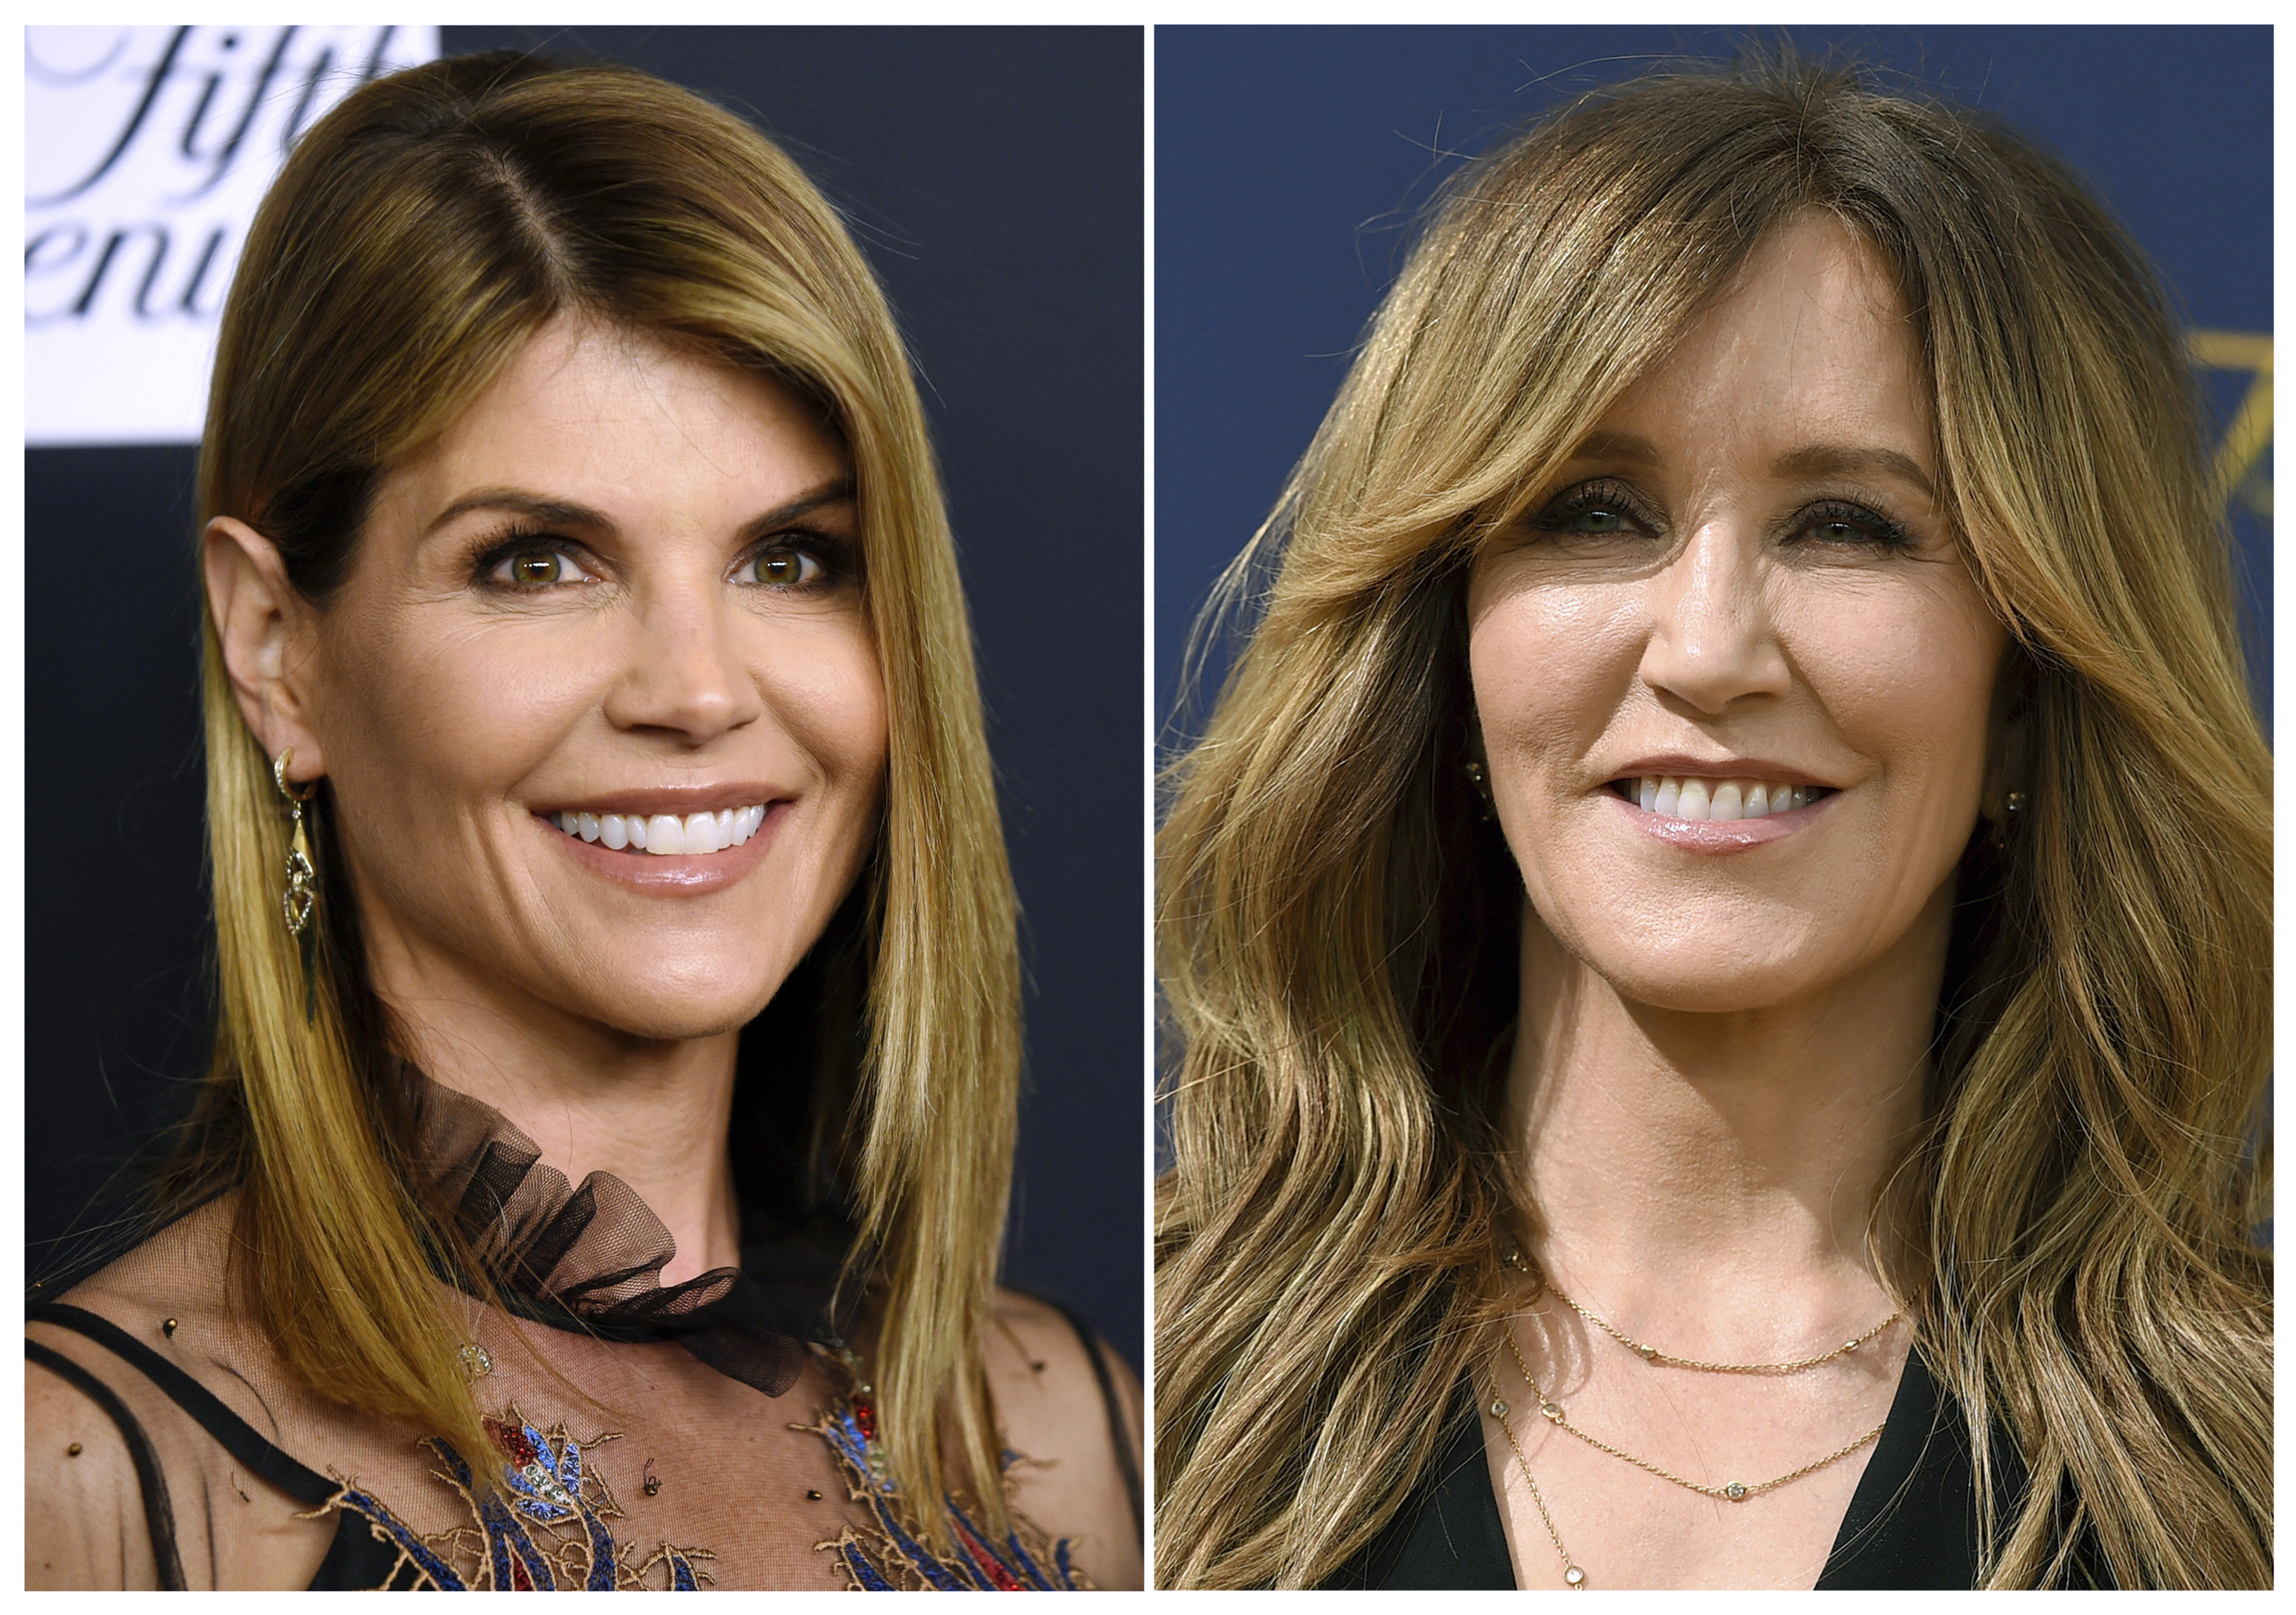 Lori Loughlin to Ask Felicity Huffman What Prison Is Like: Report